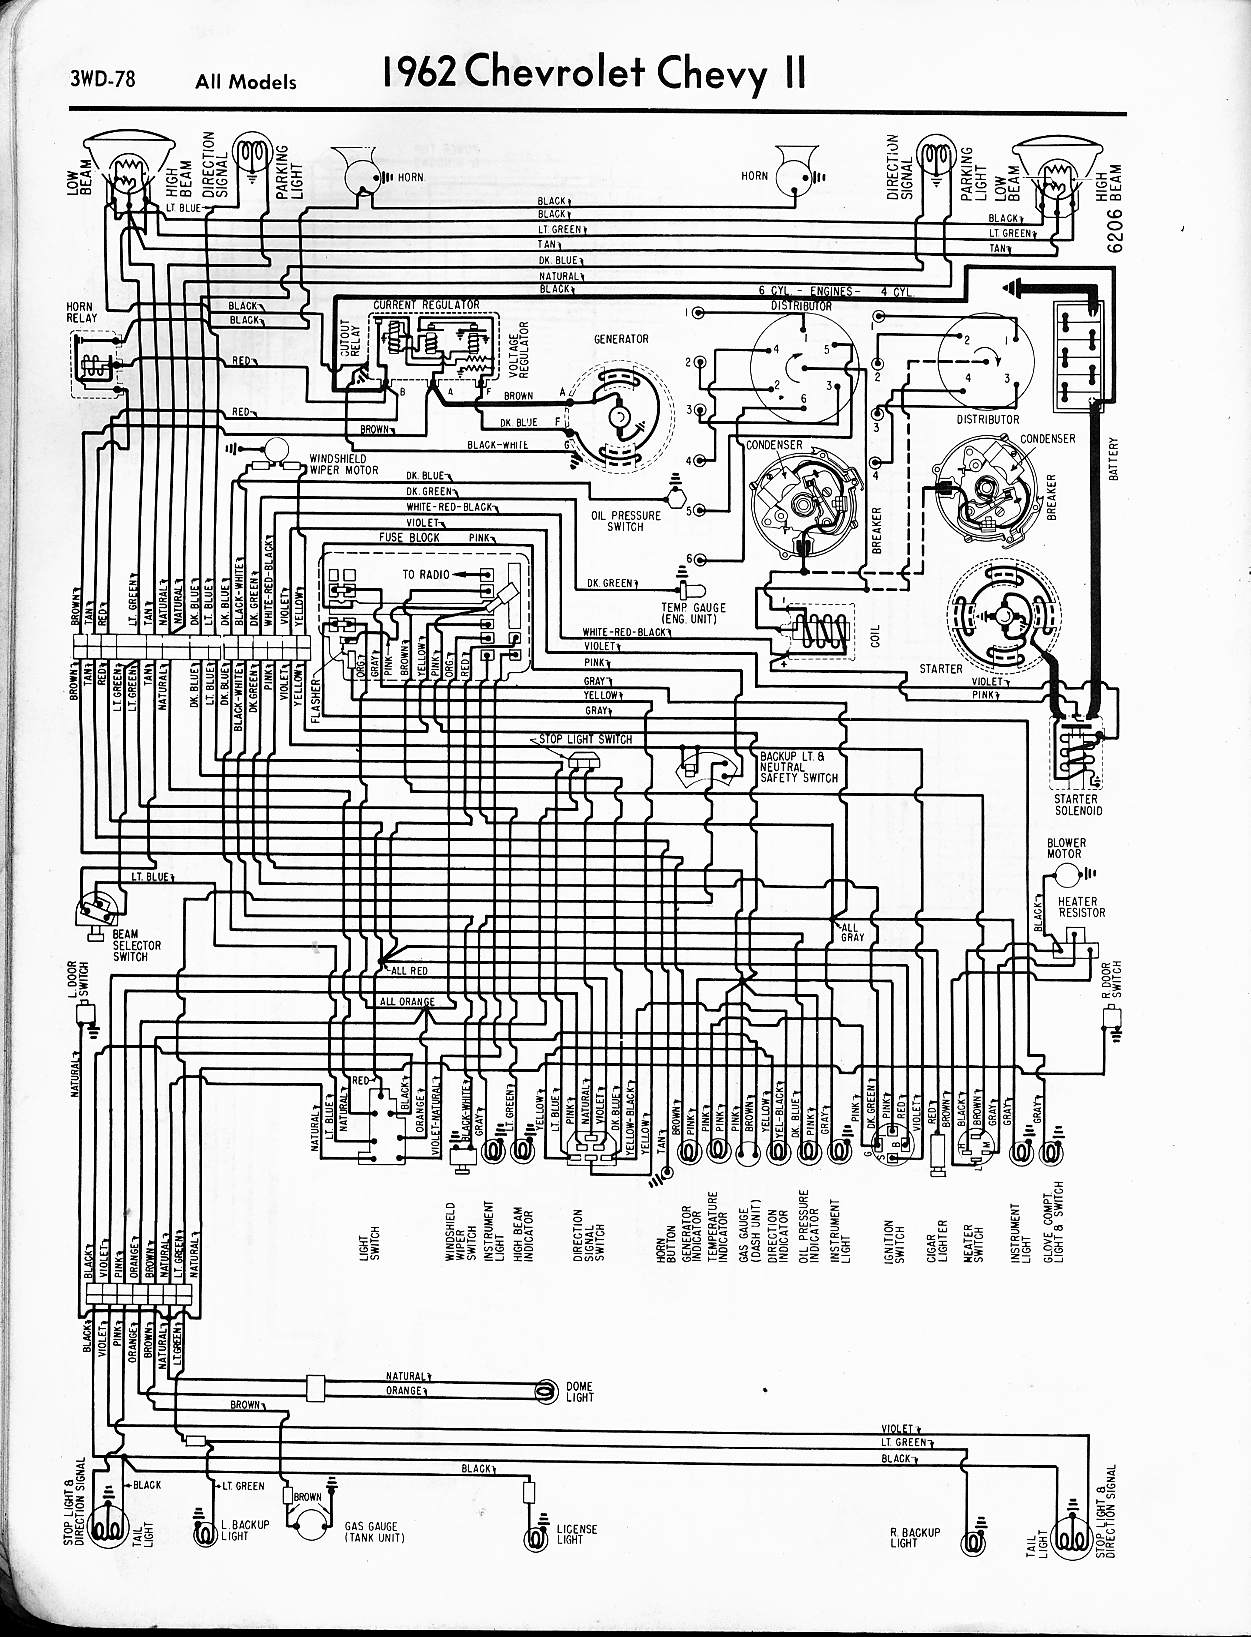 1963 Chevy Impala Fuse Box Basic Wiring Schematic 04 Headlight Diagram For 1969 Schematics Silverado